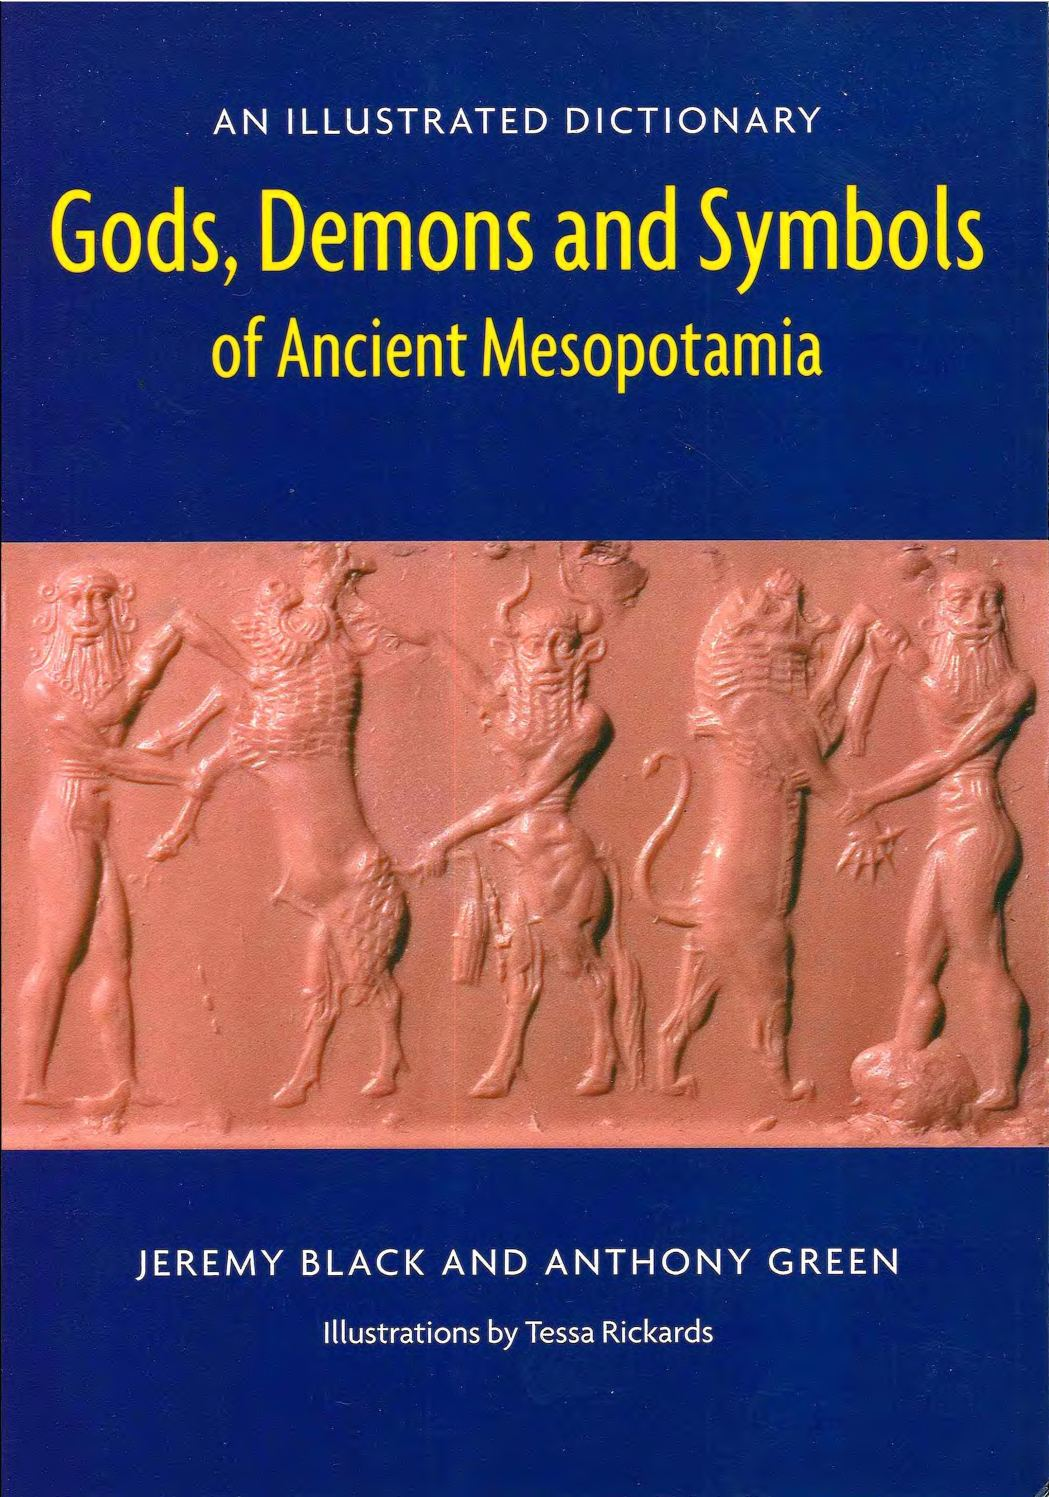 Gods Demons And Symbols Of Ancient Mesopotamia. An Illustrated Dictionary (1992)